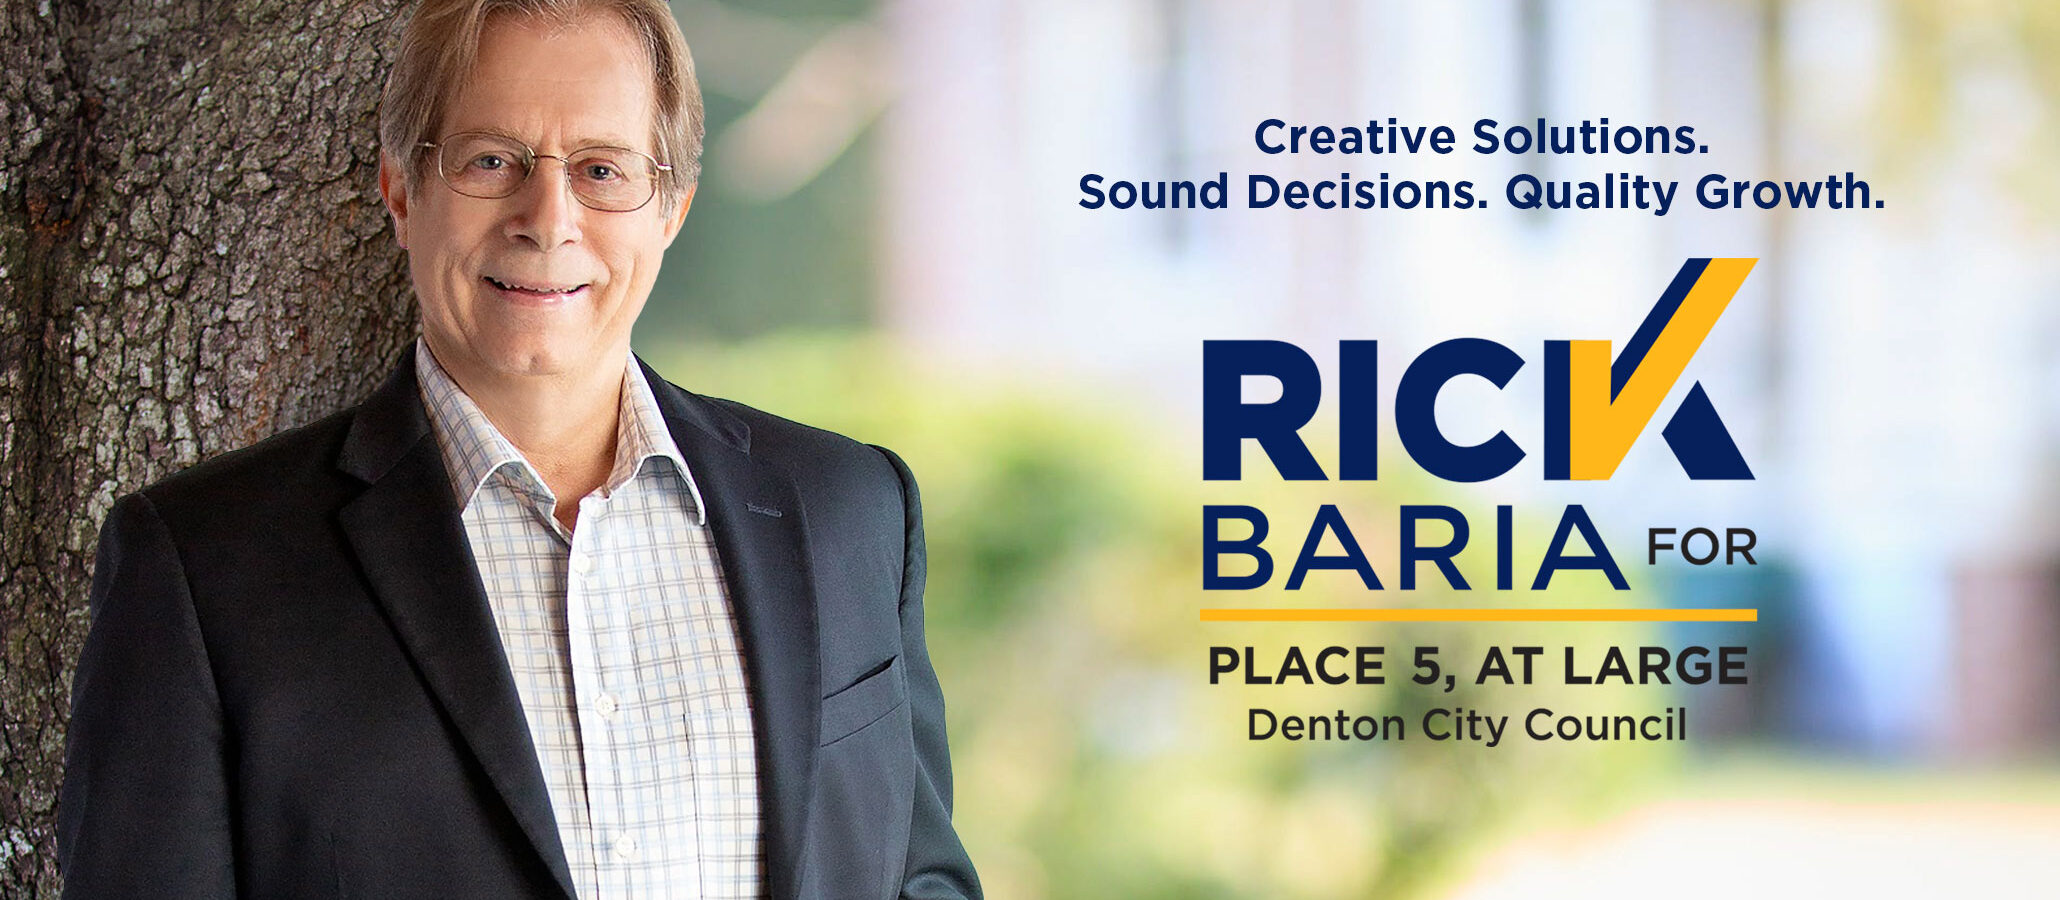 Rick-Baria-website-slide-2